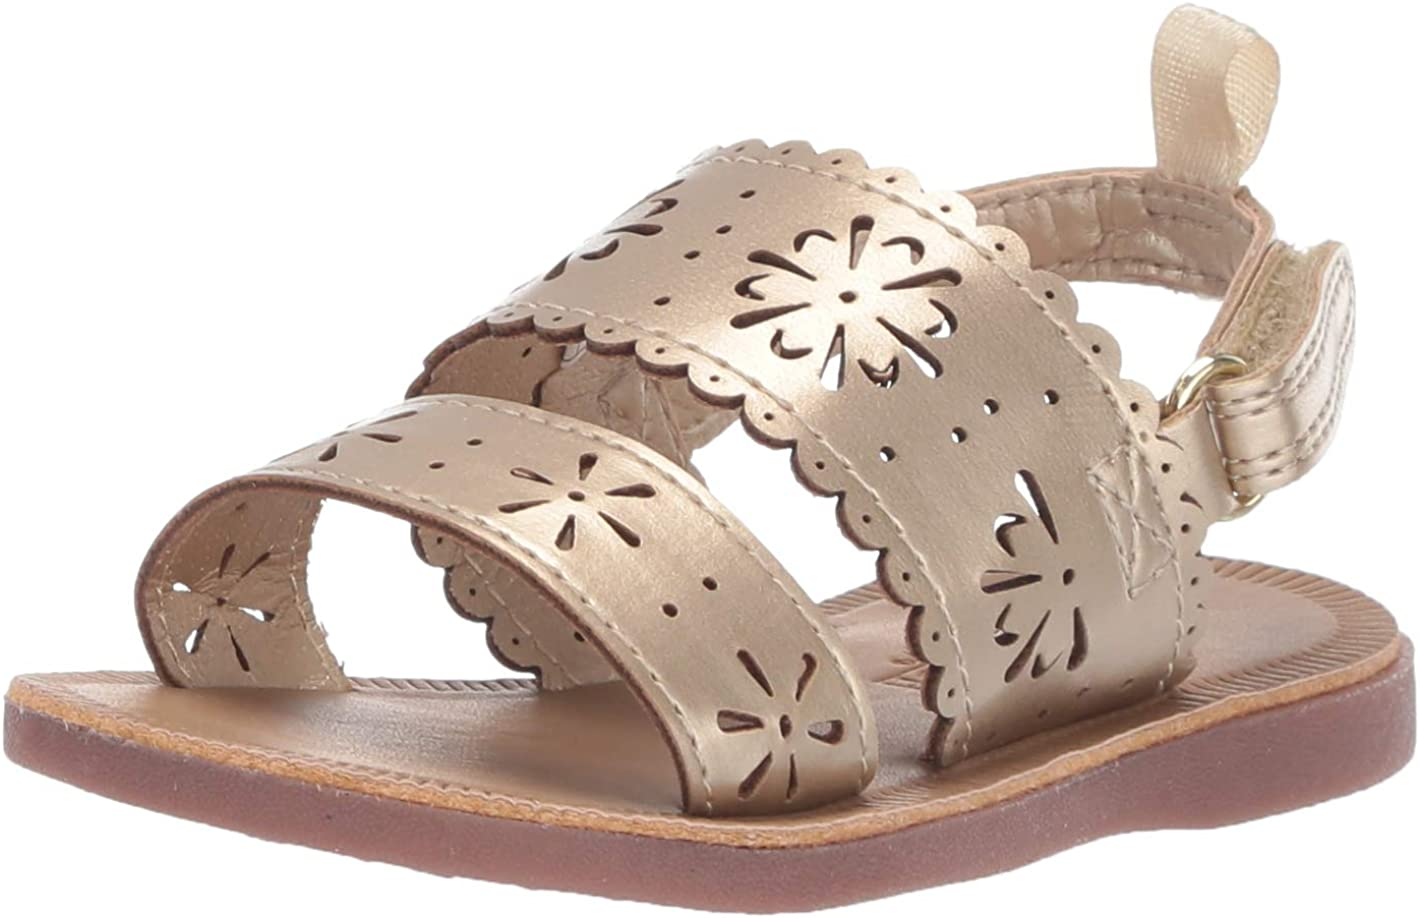 Gold, OshKosh BGosh Aditi Girls Floral Cut-Out Sandal